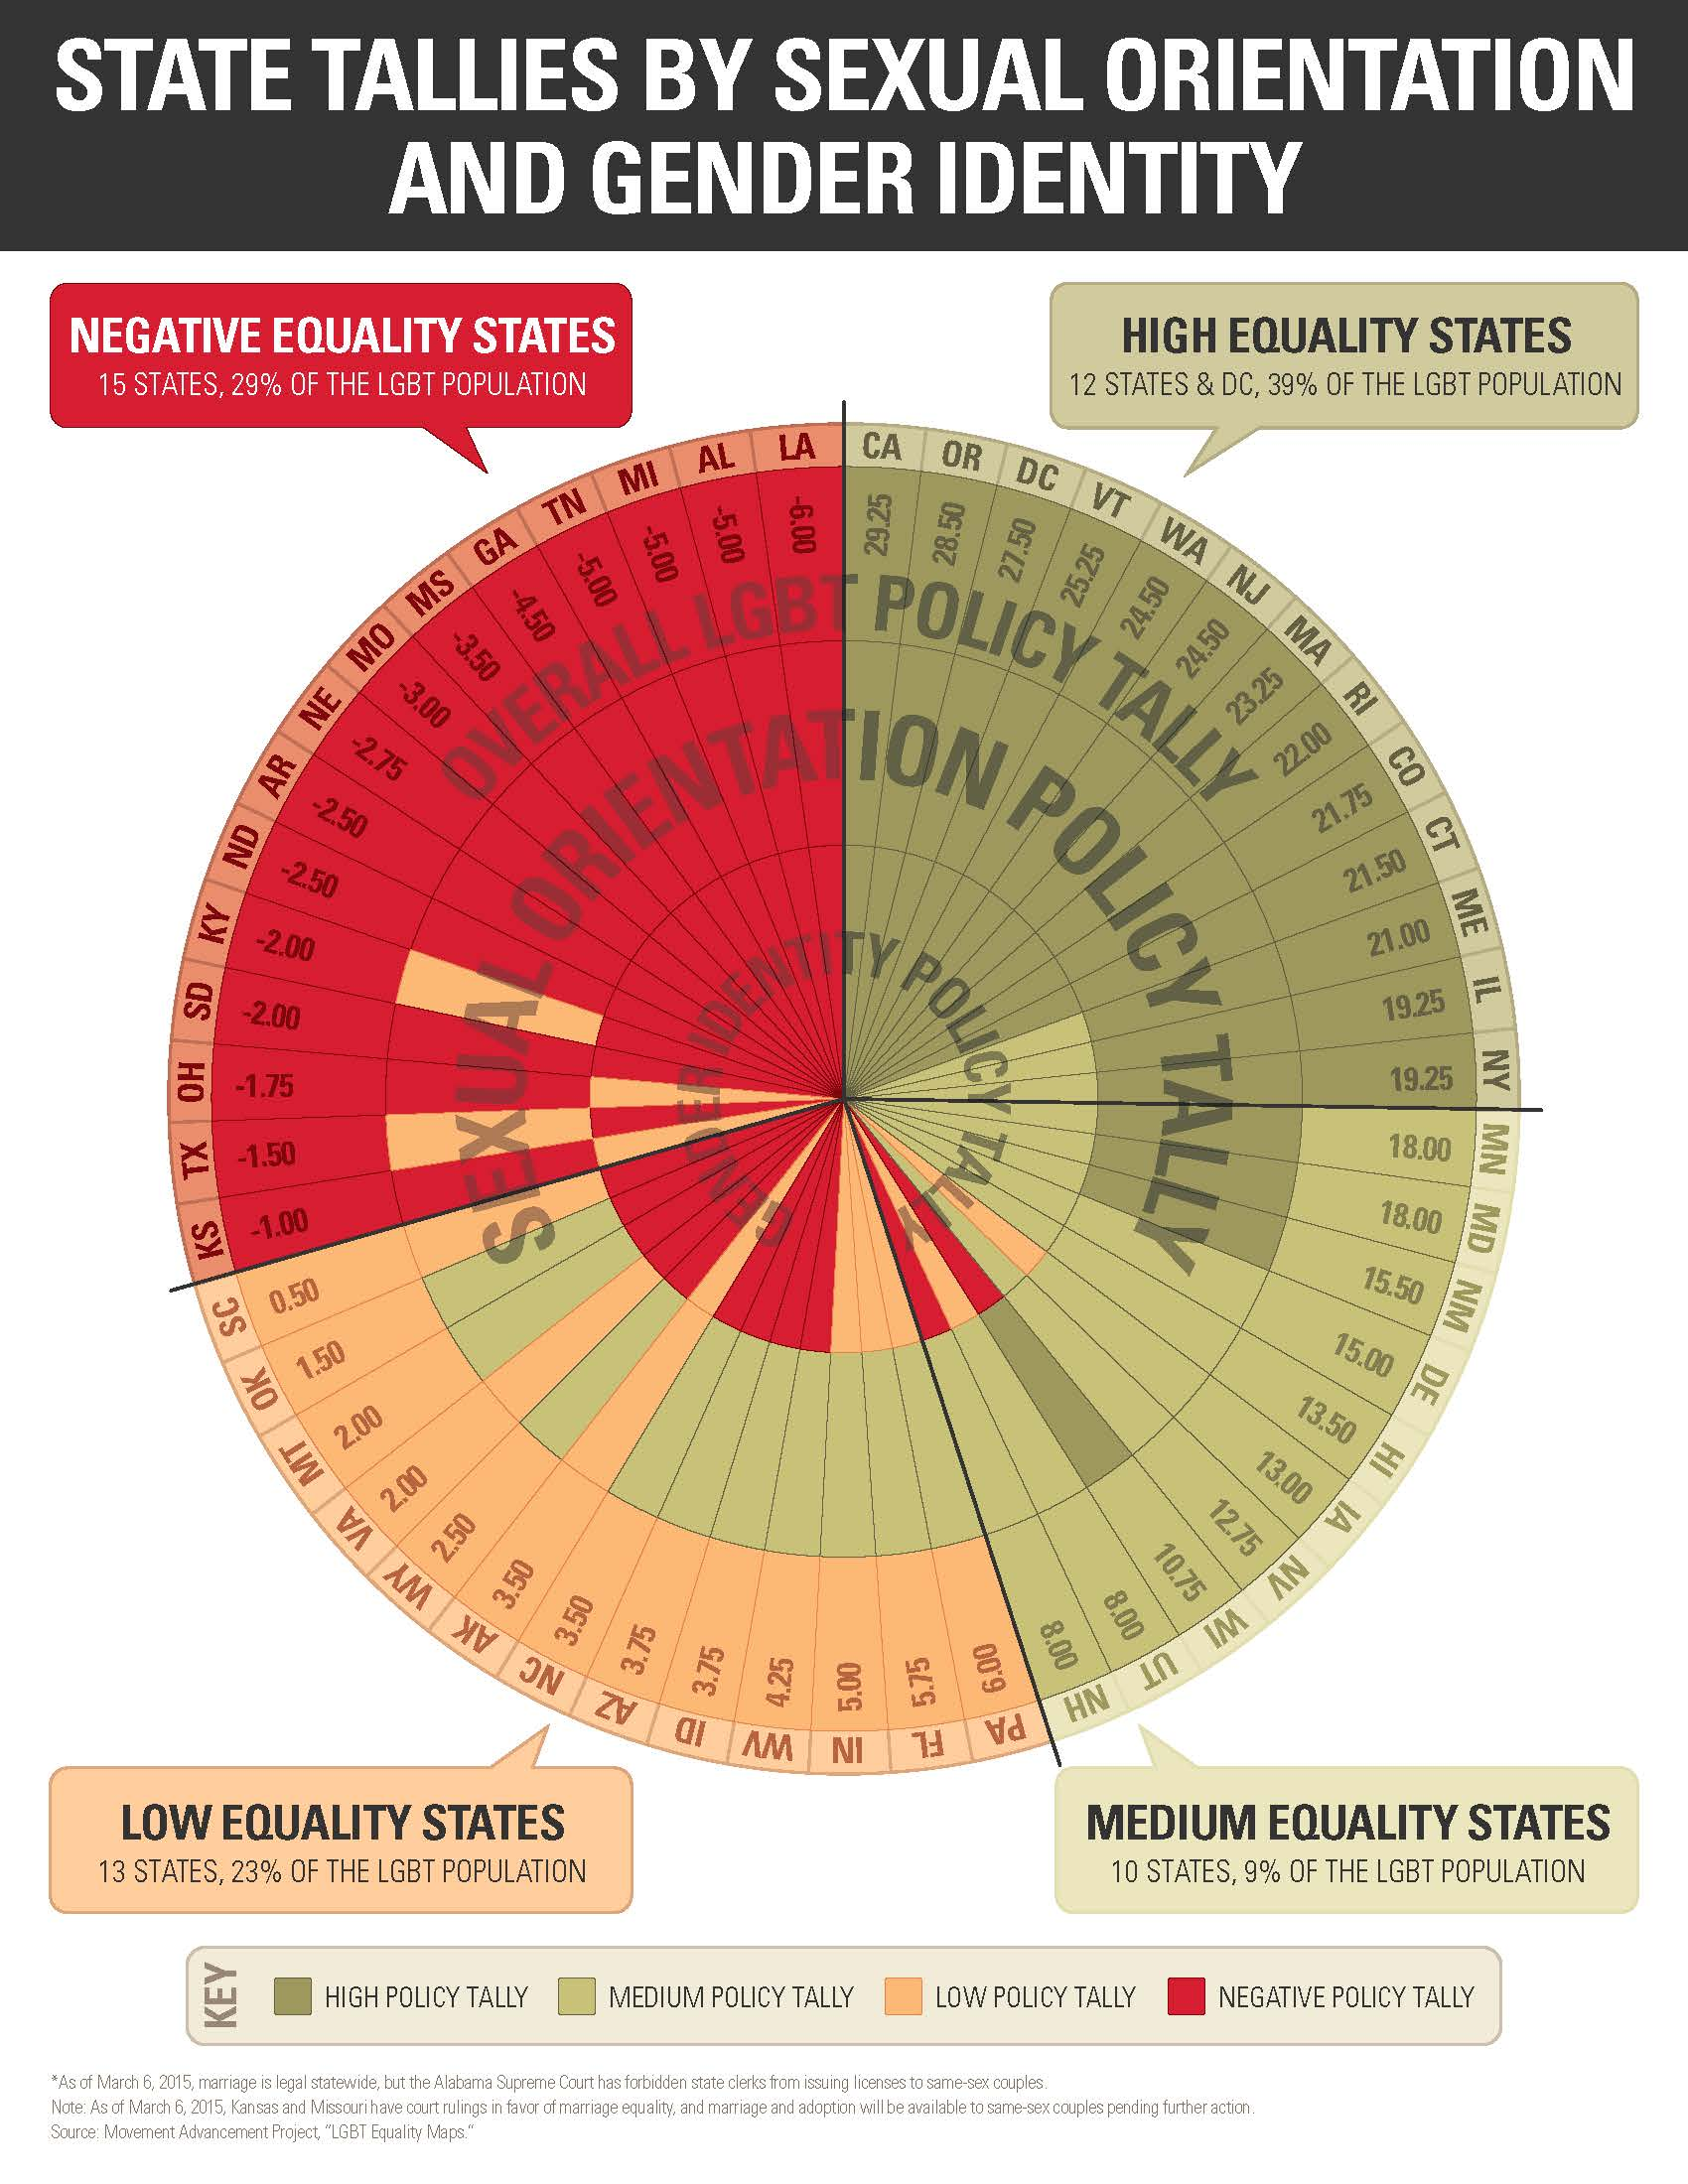 States with sexual orientation laws